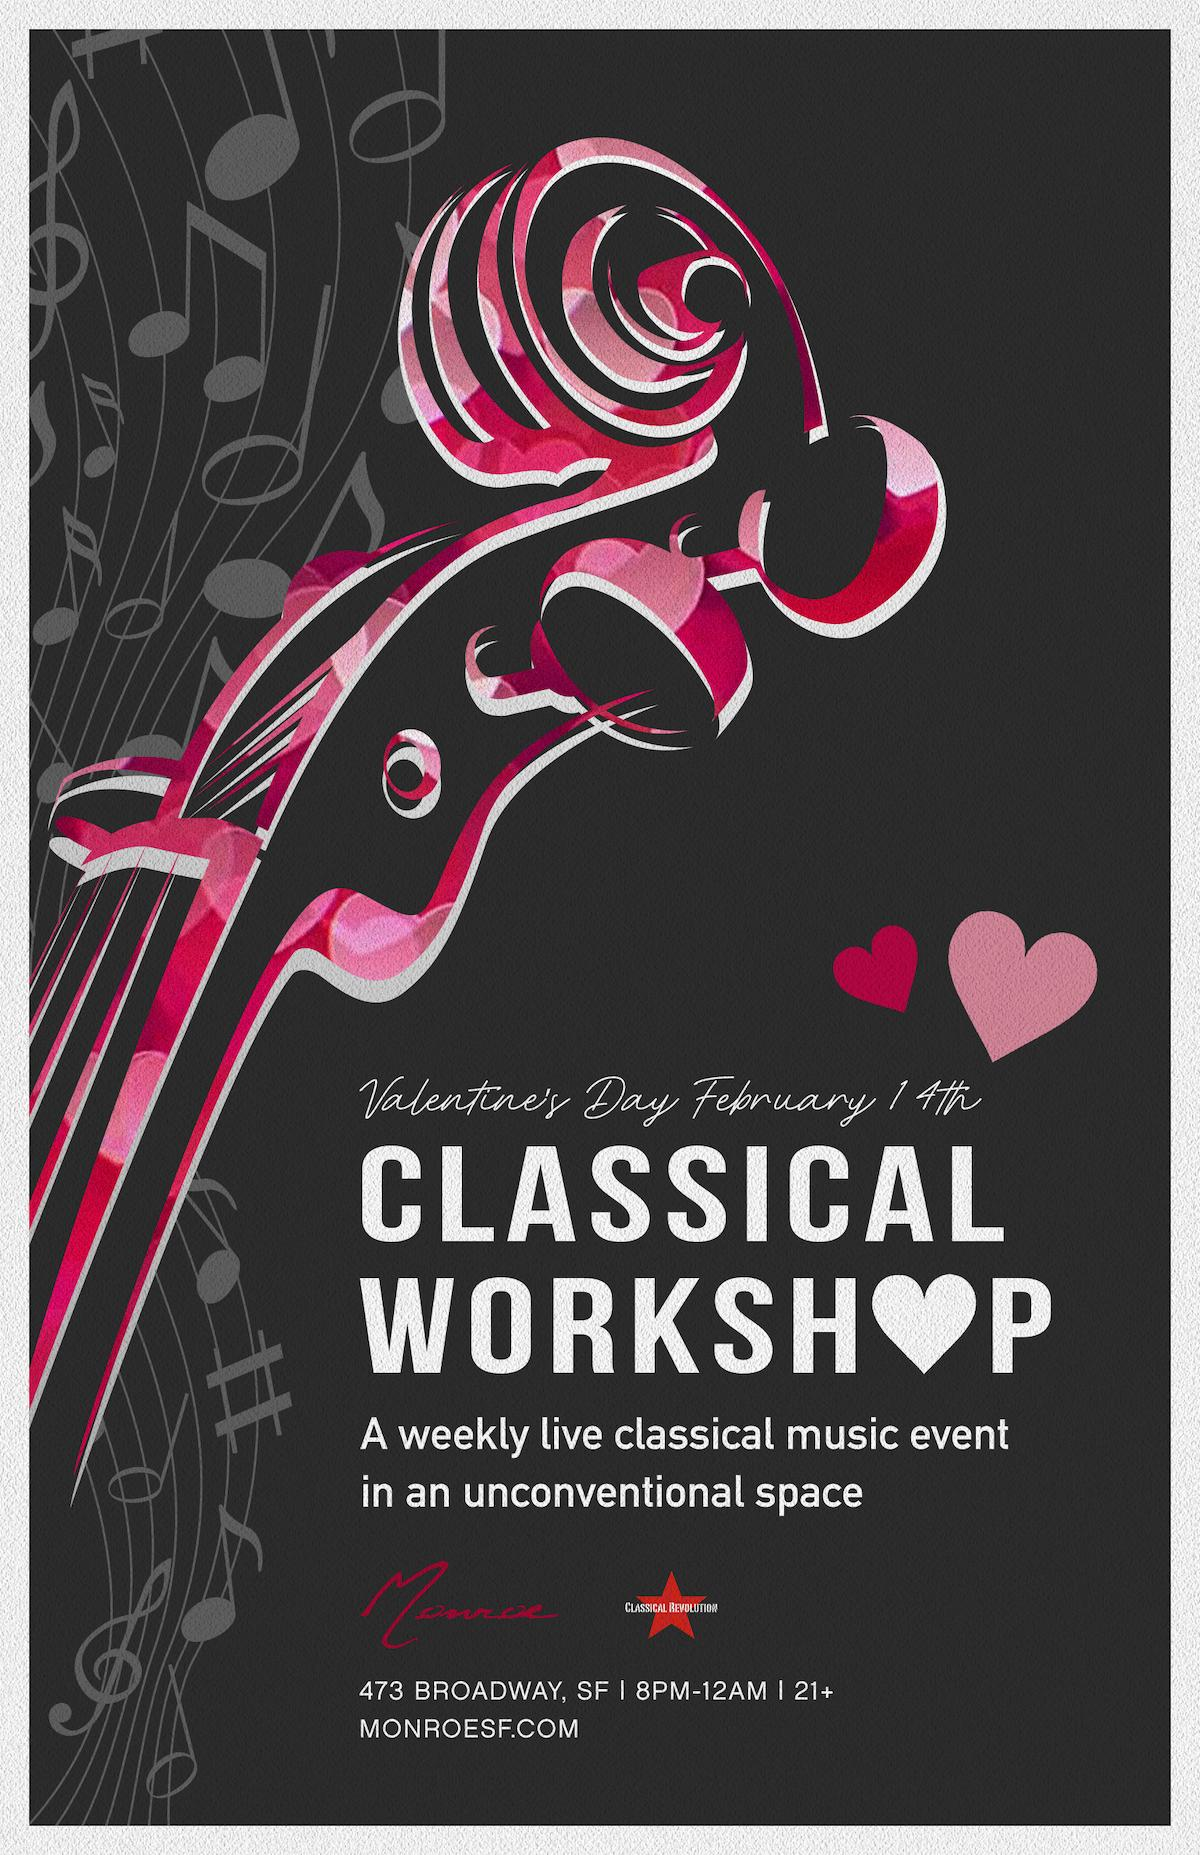 Valentine's Day Relaunch! Classical Workshop: Weekly Late Night Live Chamber Music